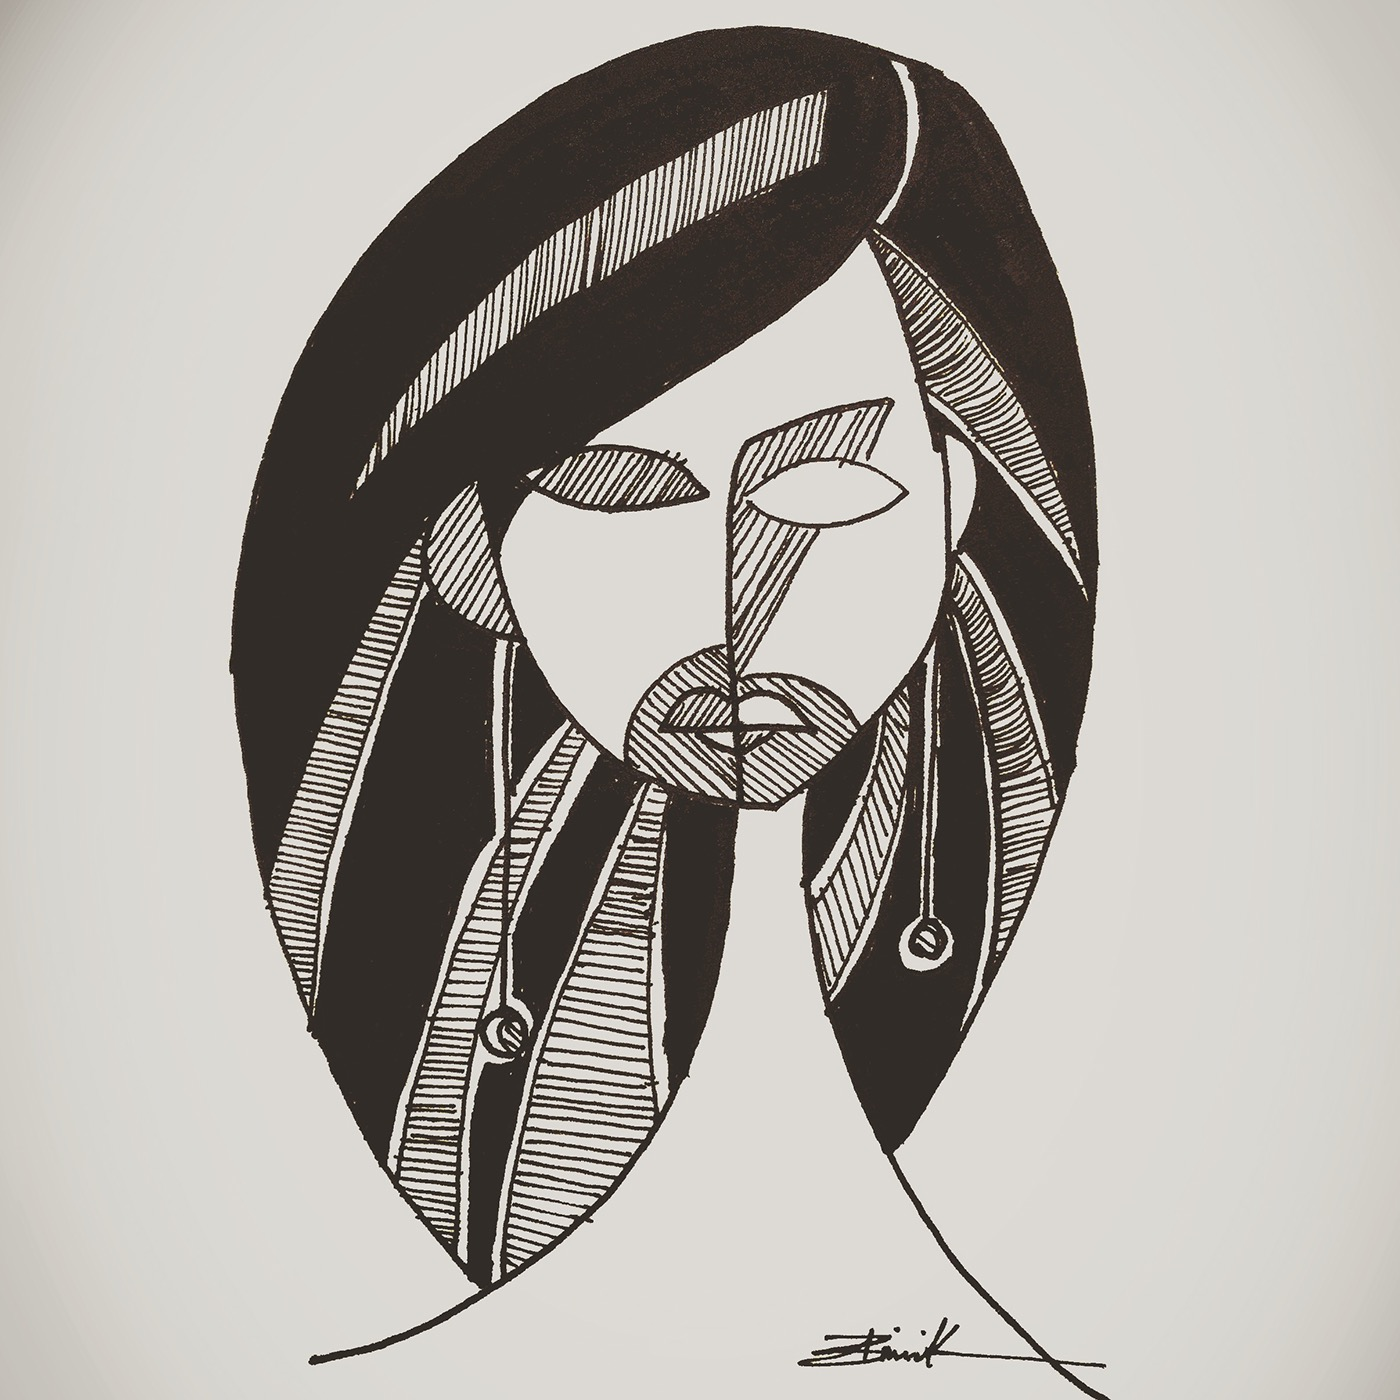 ink micron pen ILLUSTRATION  wax candles paper women middle east iraq BAGHDAD mesopotamia